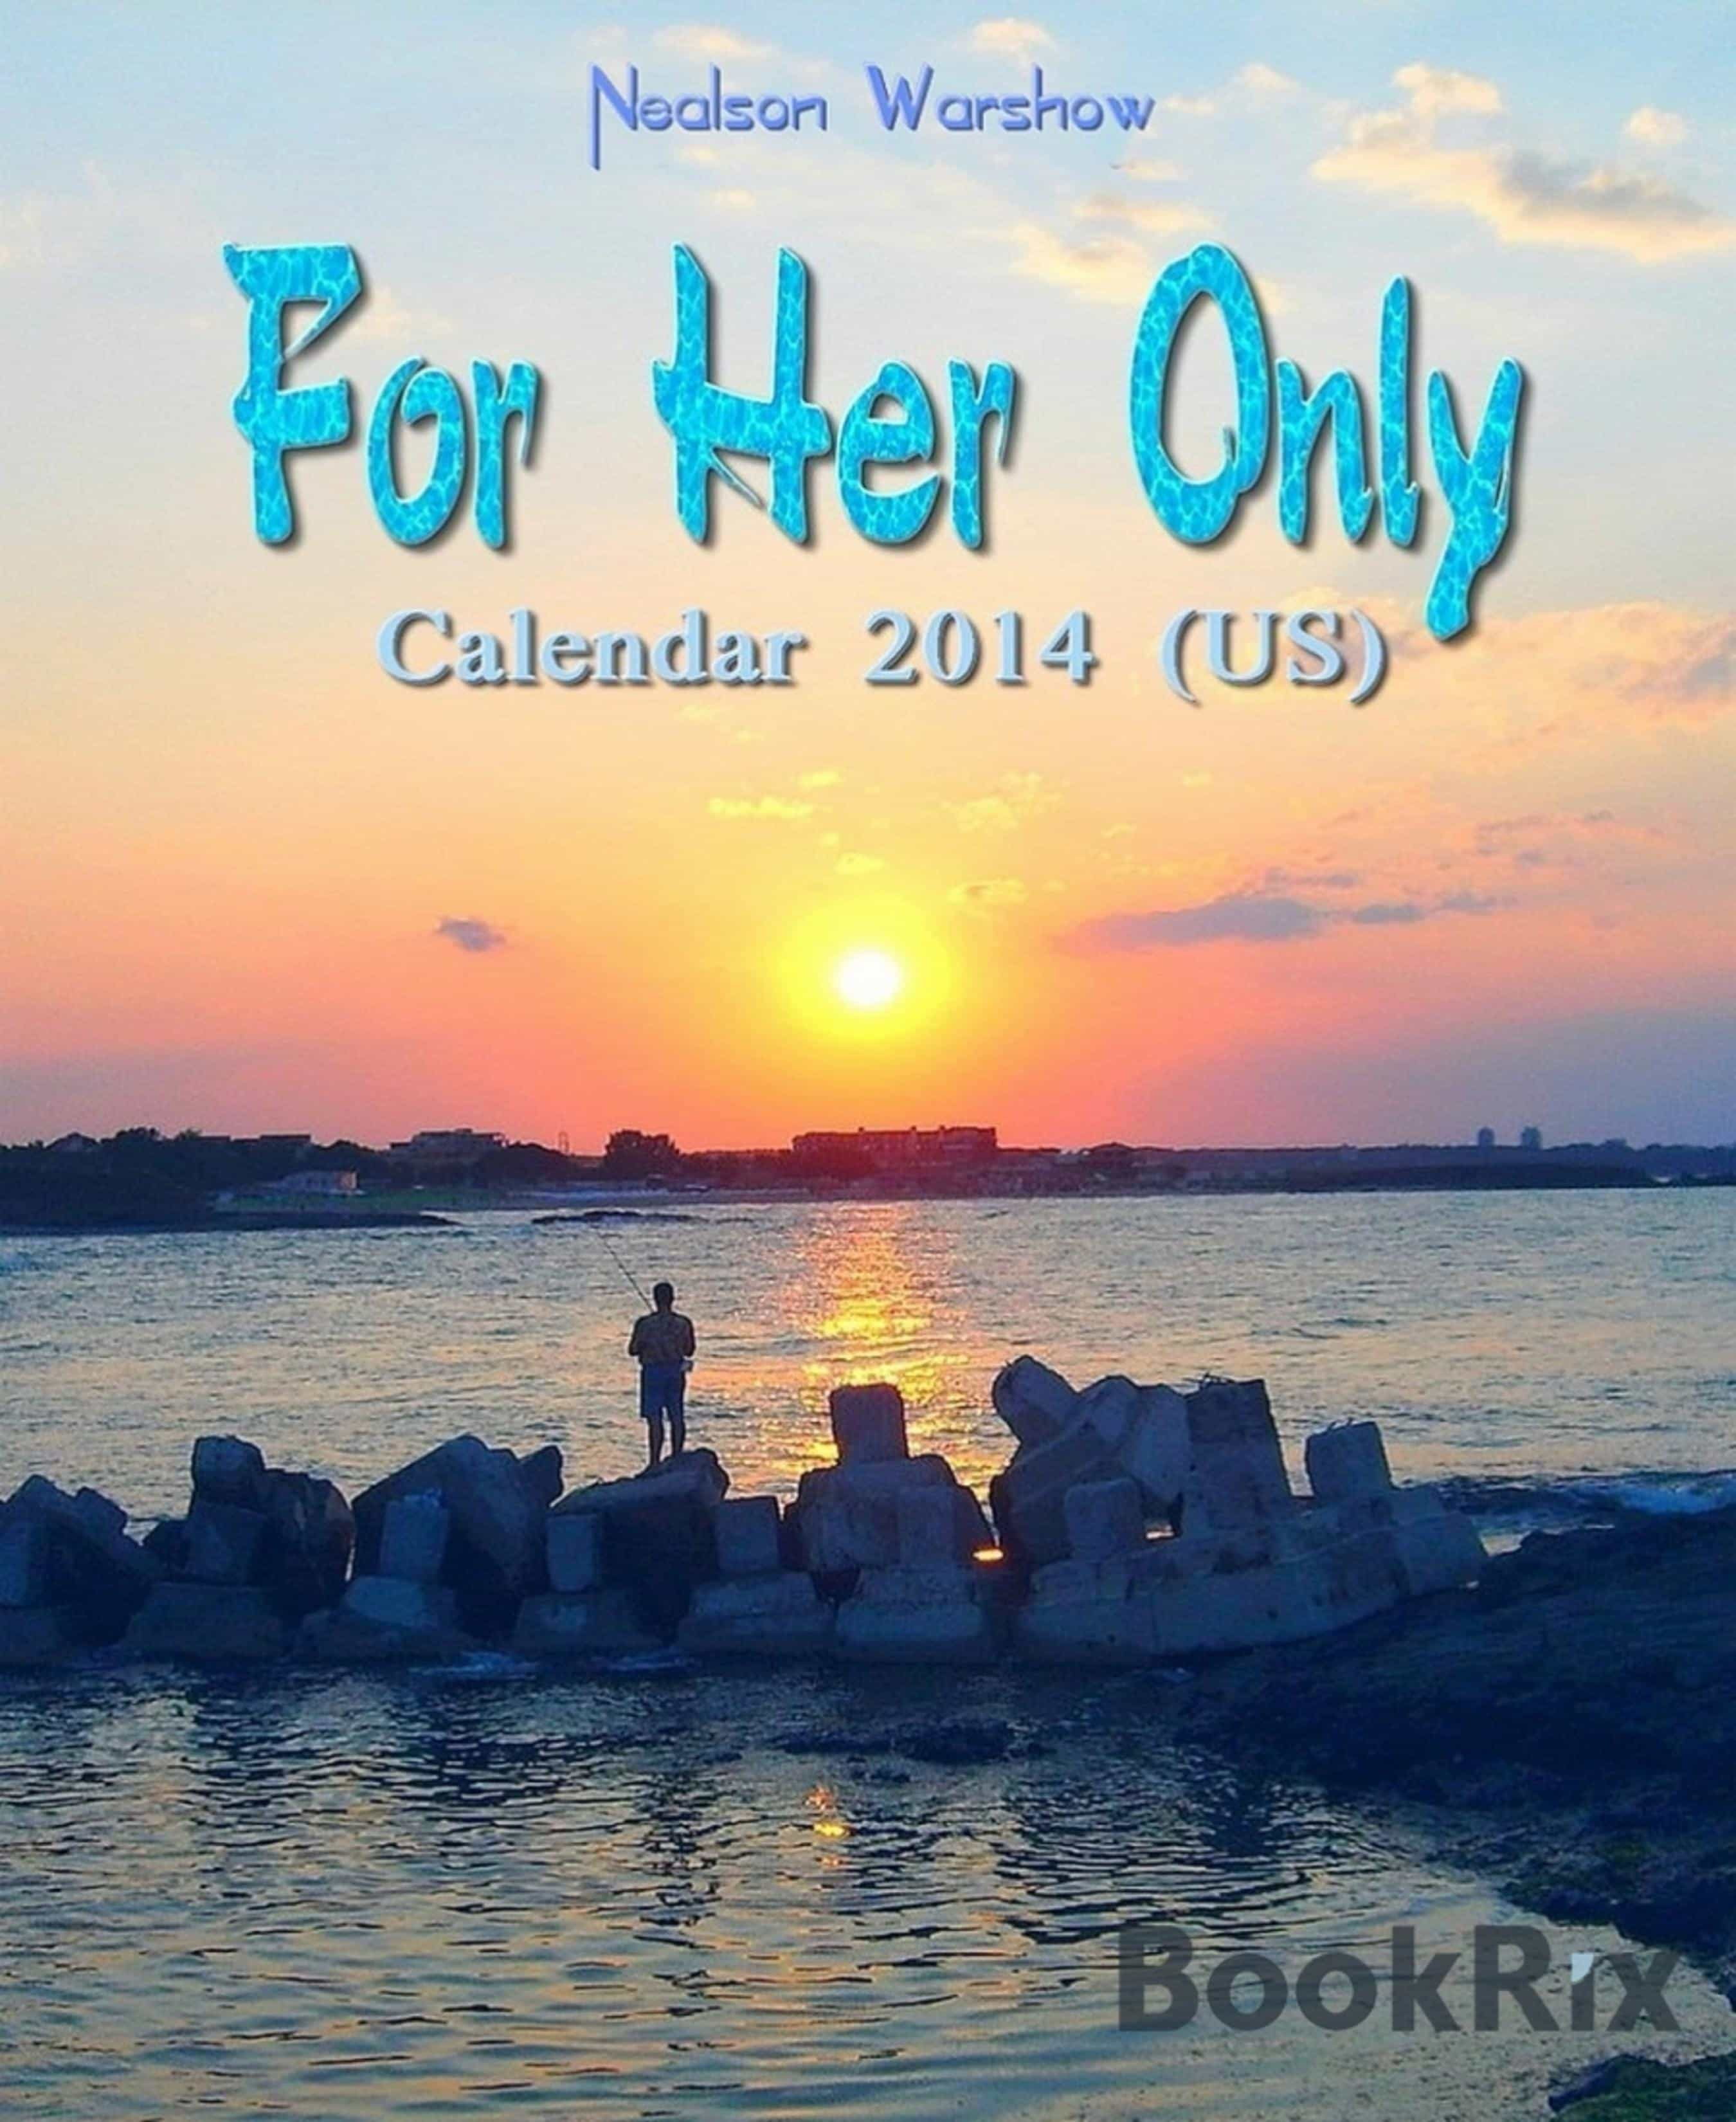 FOR HER ONLY: CALENDAR 2014